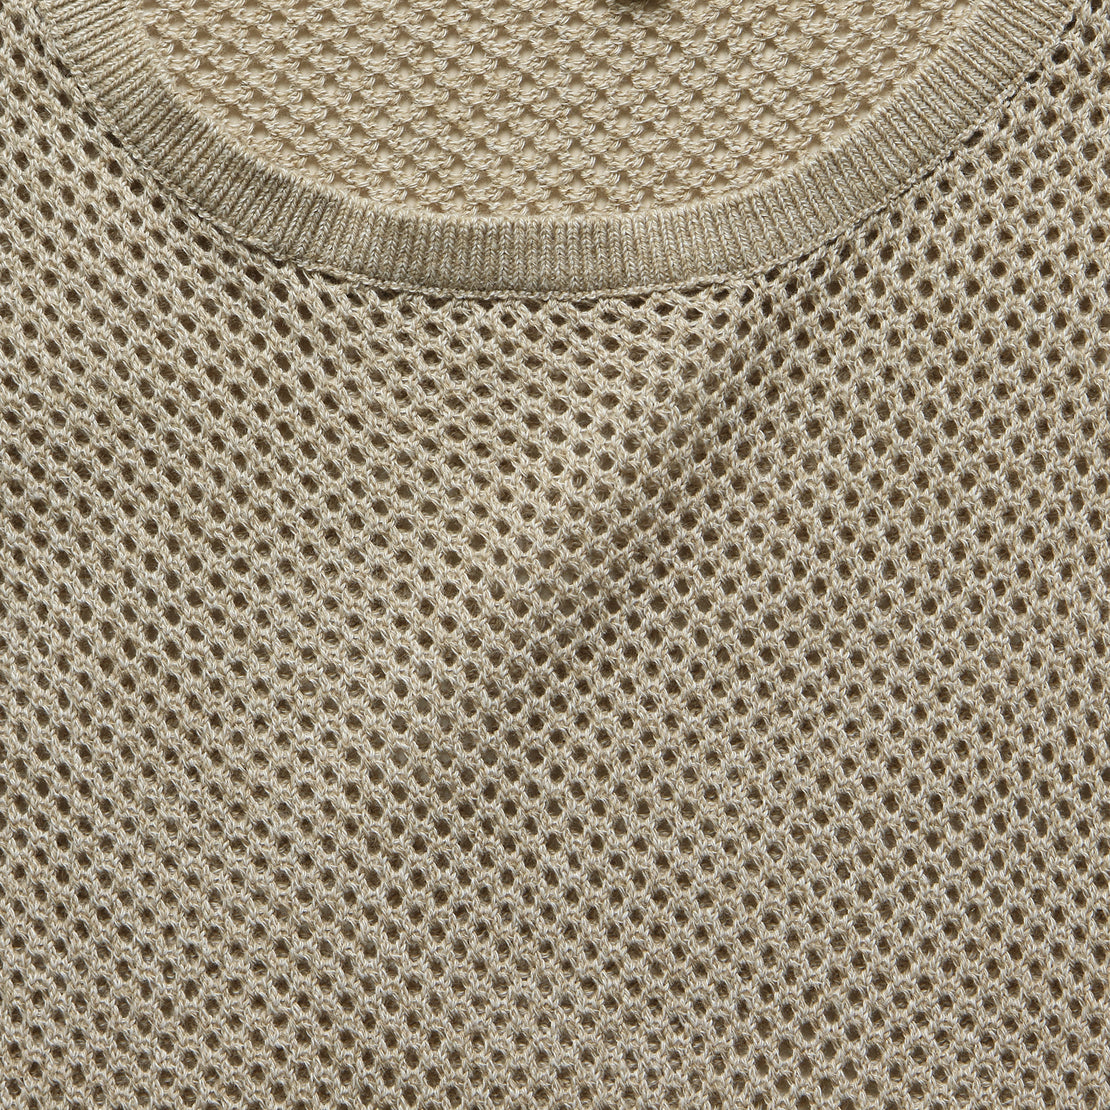 Josephine Knit Top - Oatmeal Heather